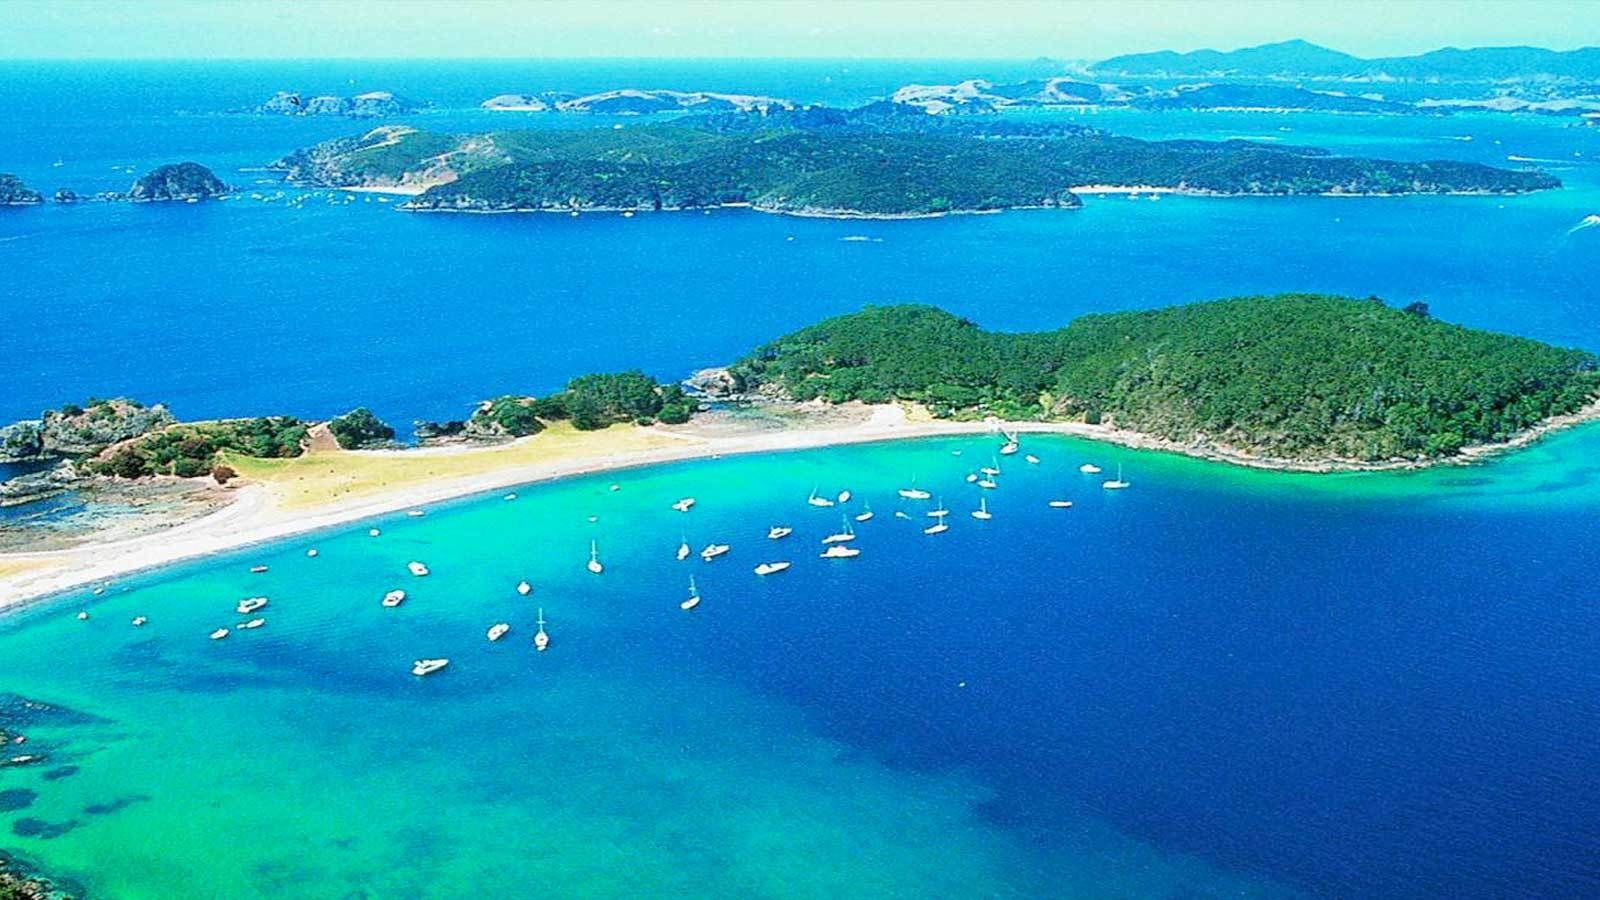 Post-Cruise Shore Excursion: Guided Bay of Islands Tour with Transfers